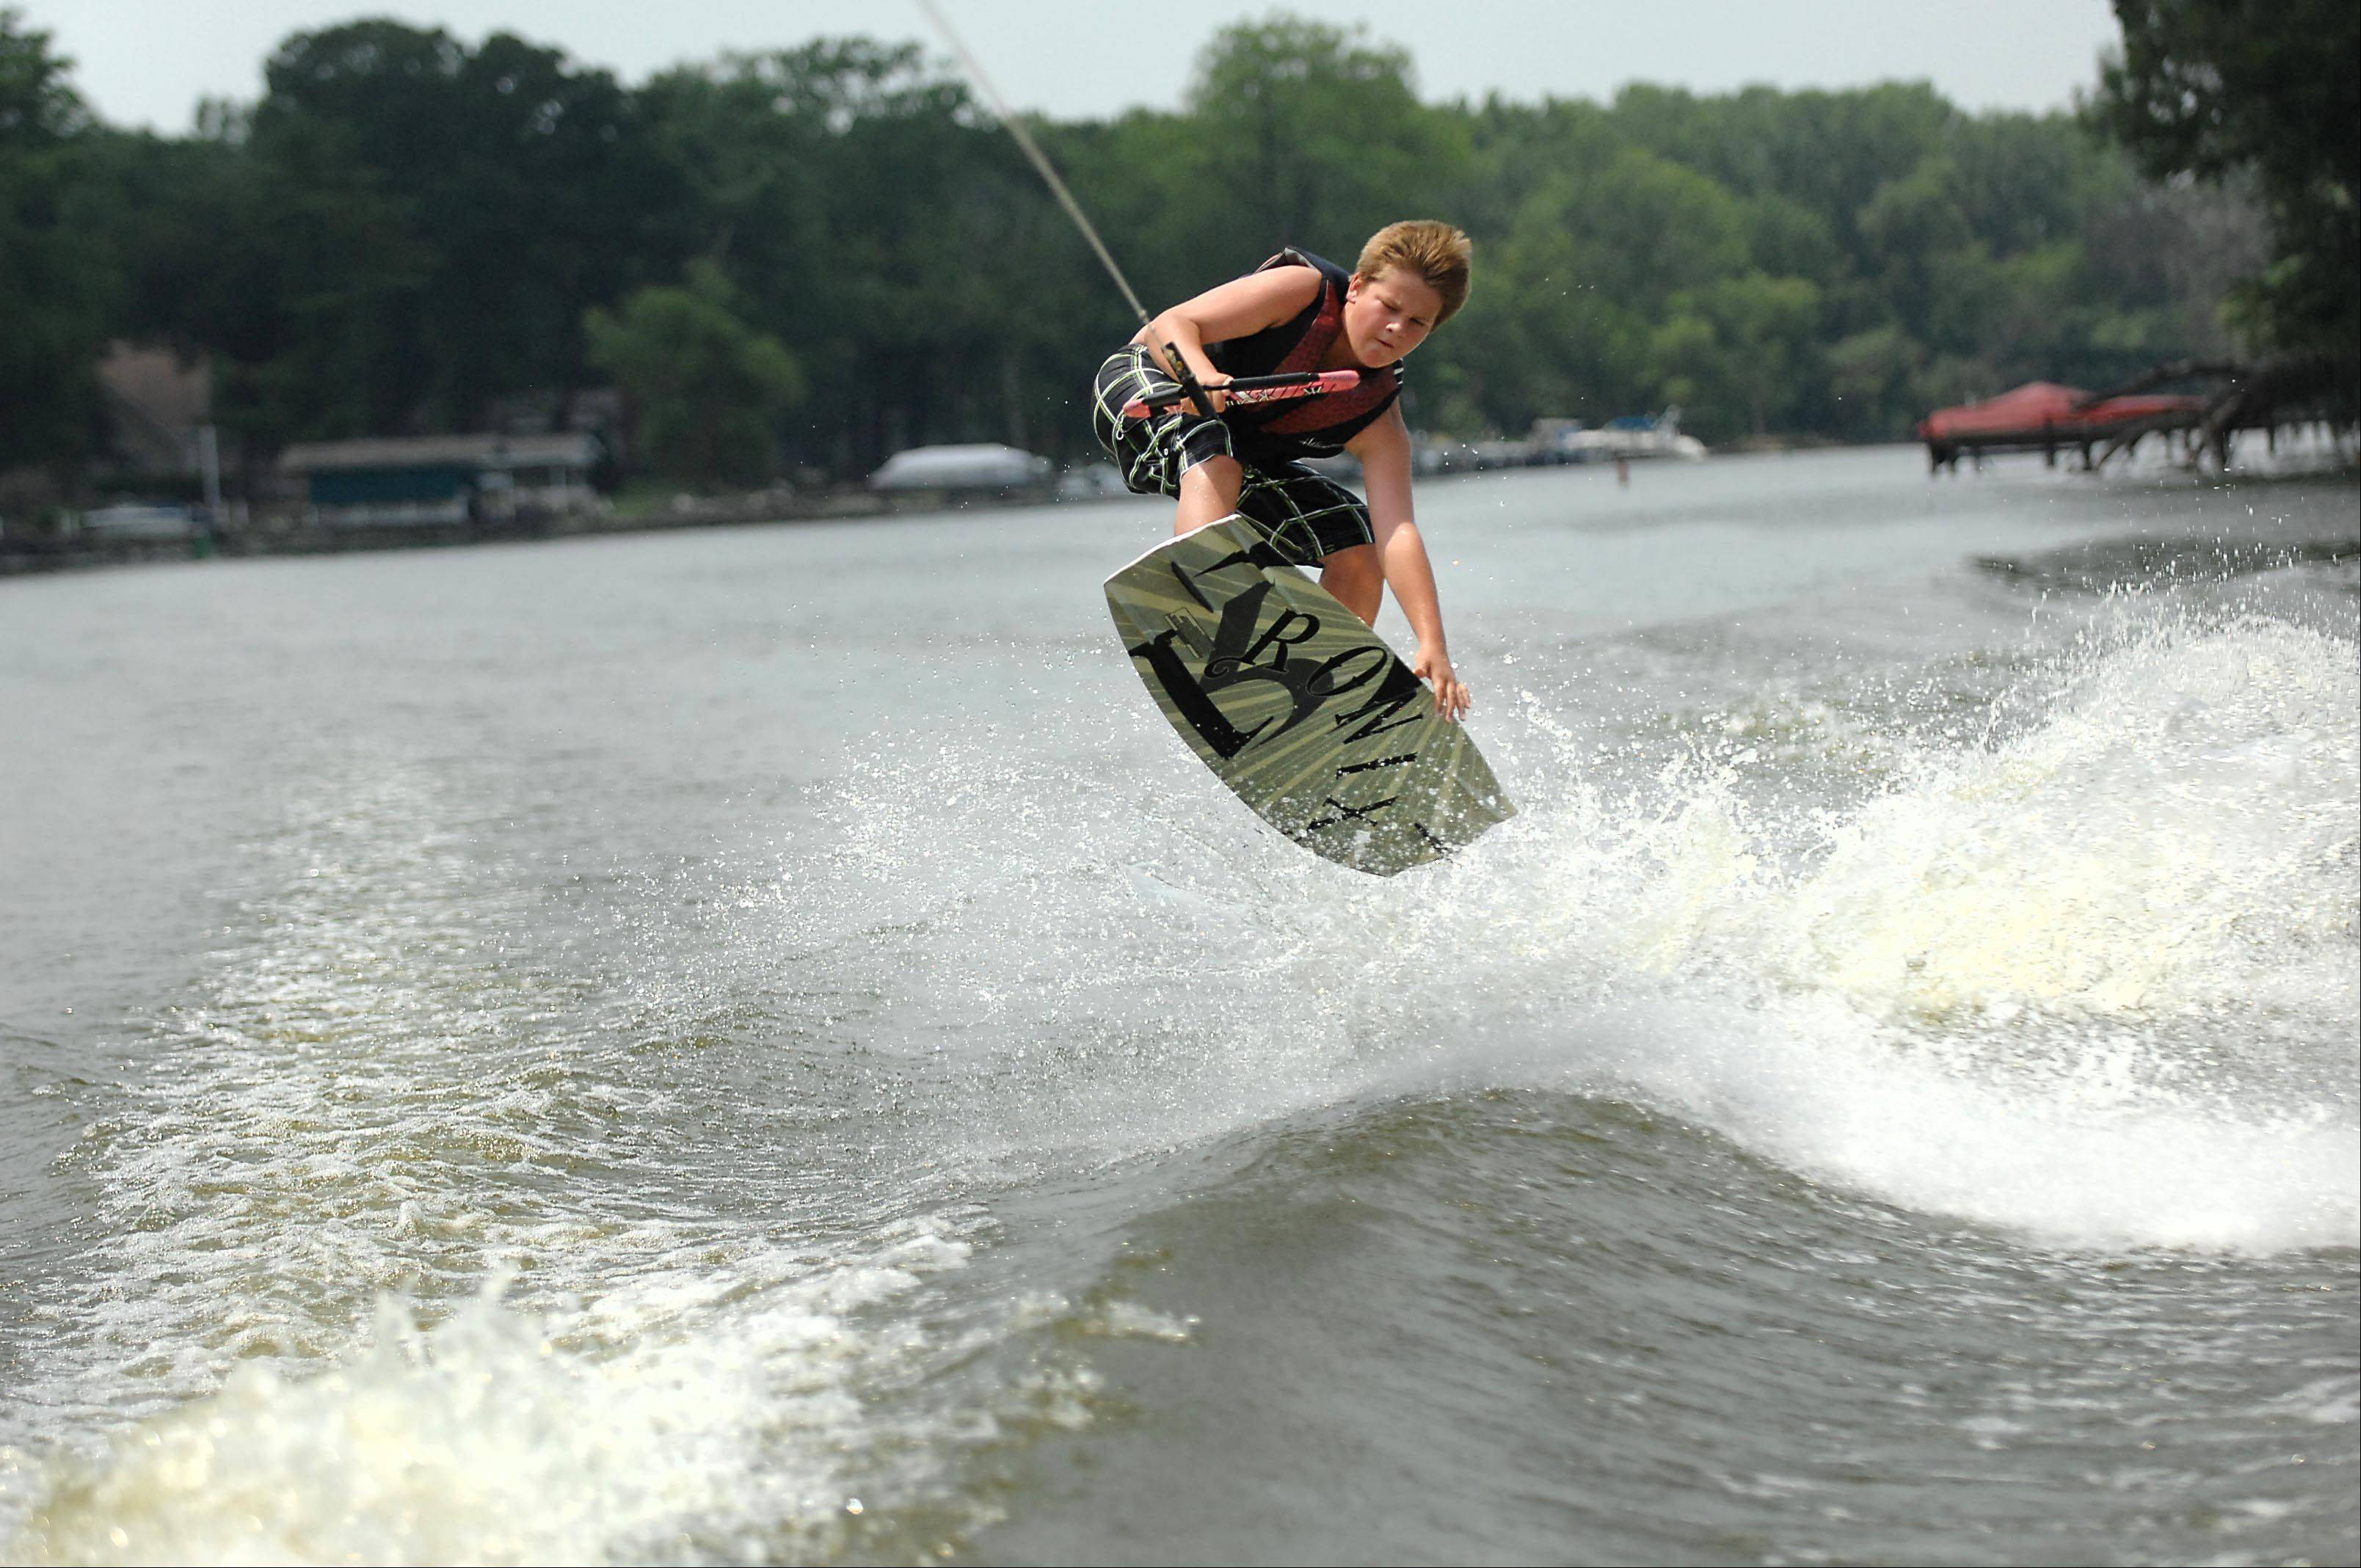 Devin Patterson, 13, of West Dundee, does a tail grab trick on the Fox River as Keith Duck drives the boat during his Raging Buffalo Wakeboard School lesson on the Fox River in Cary Monday.